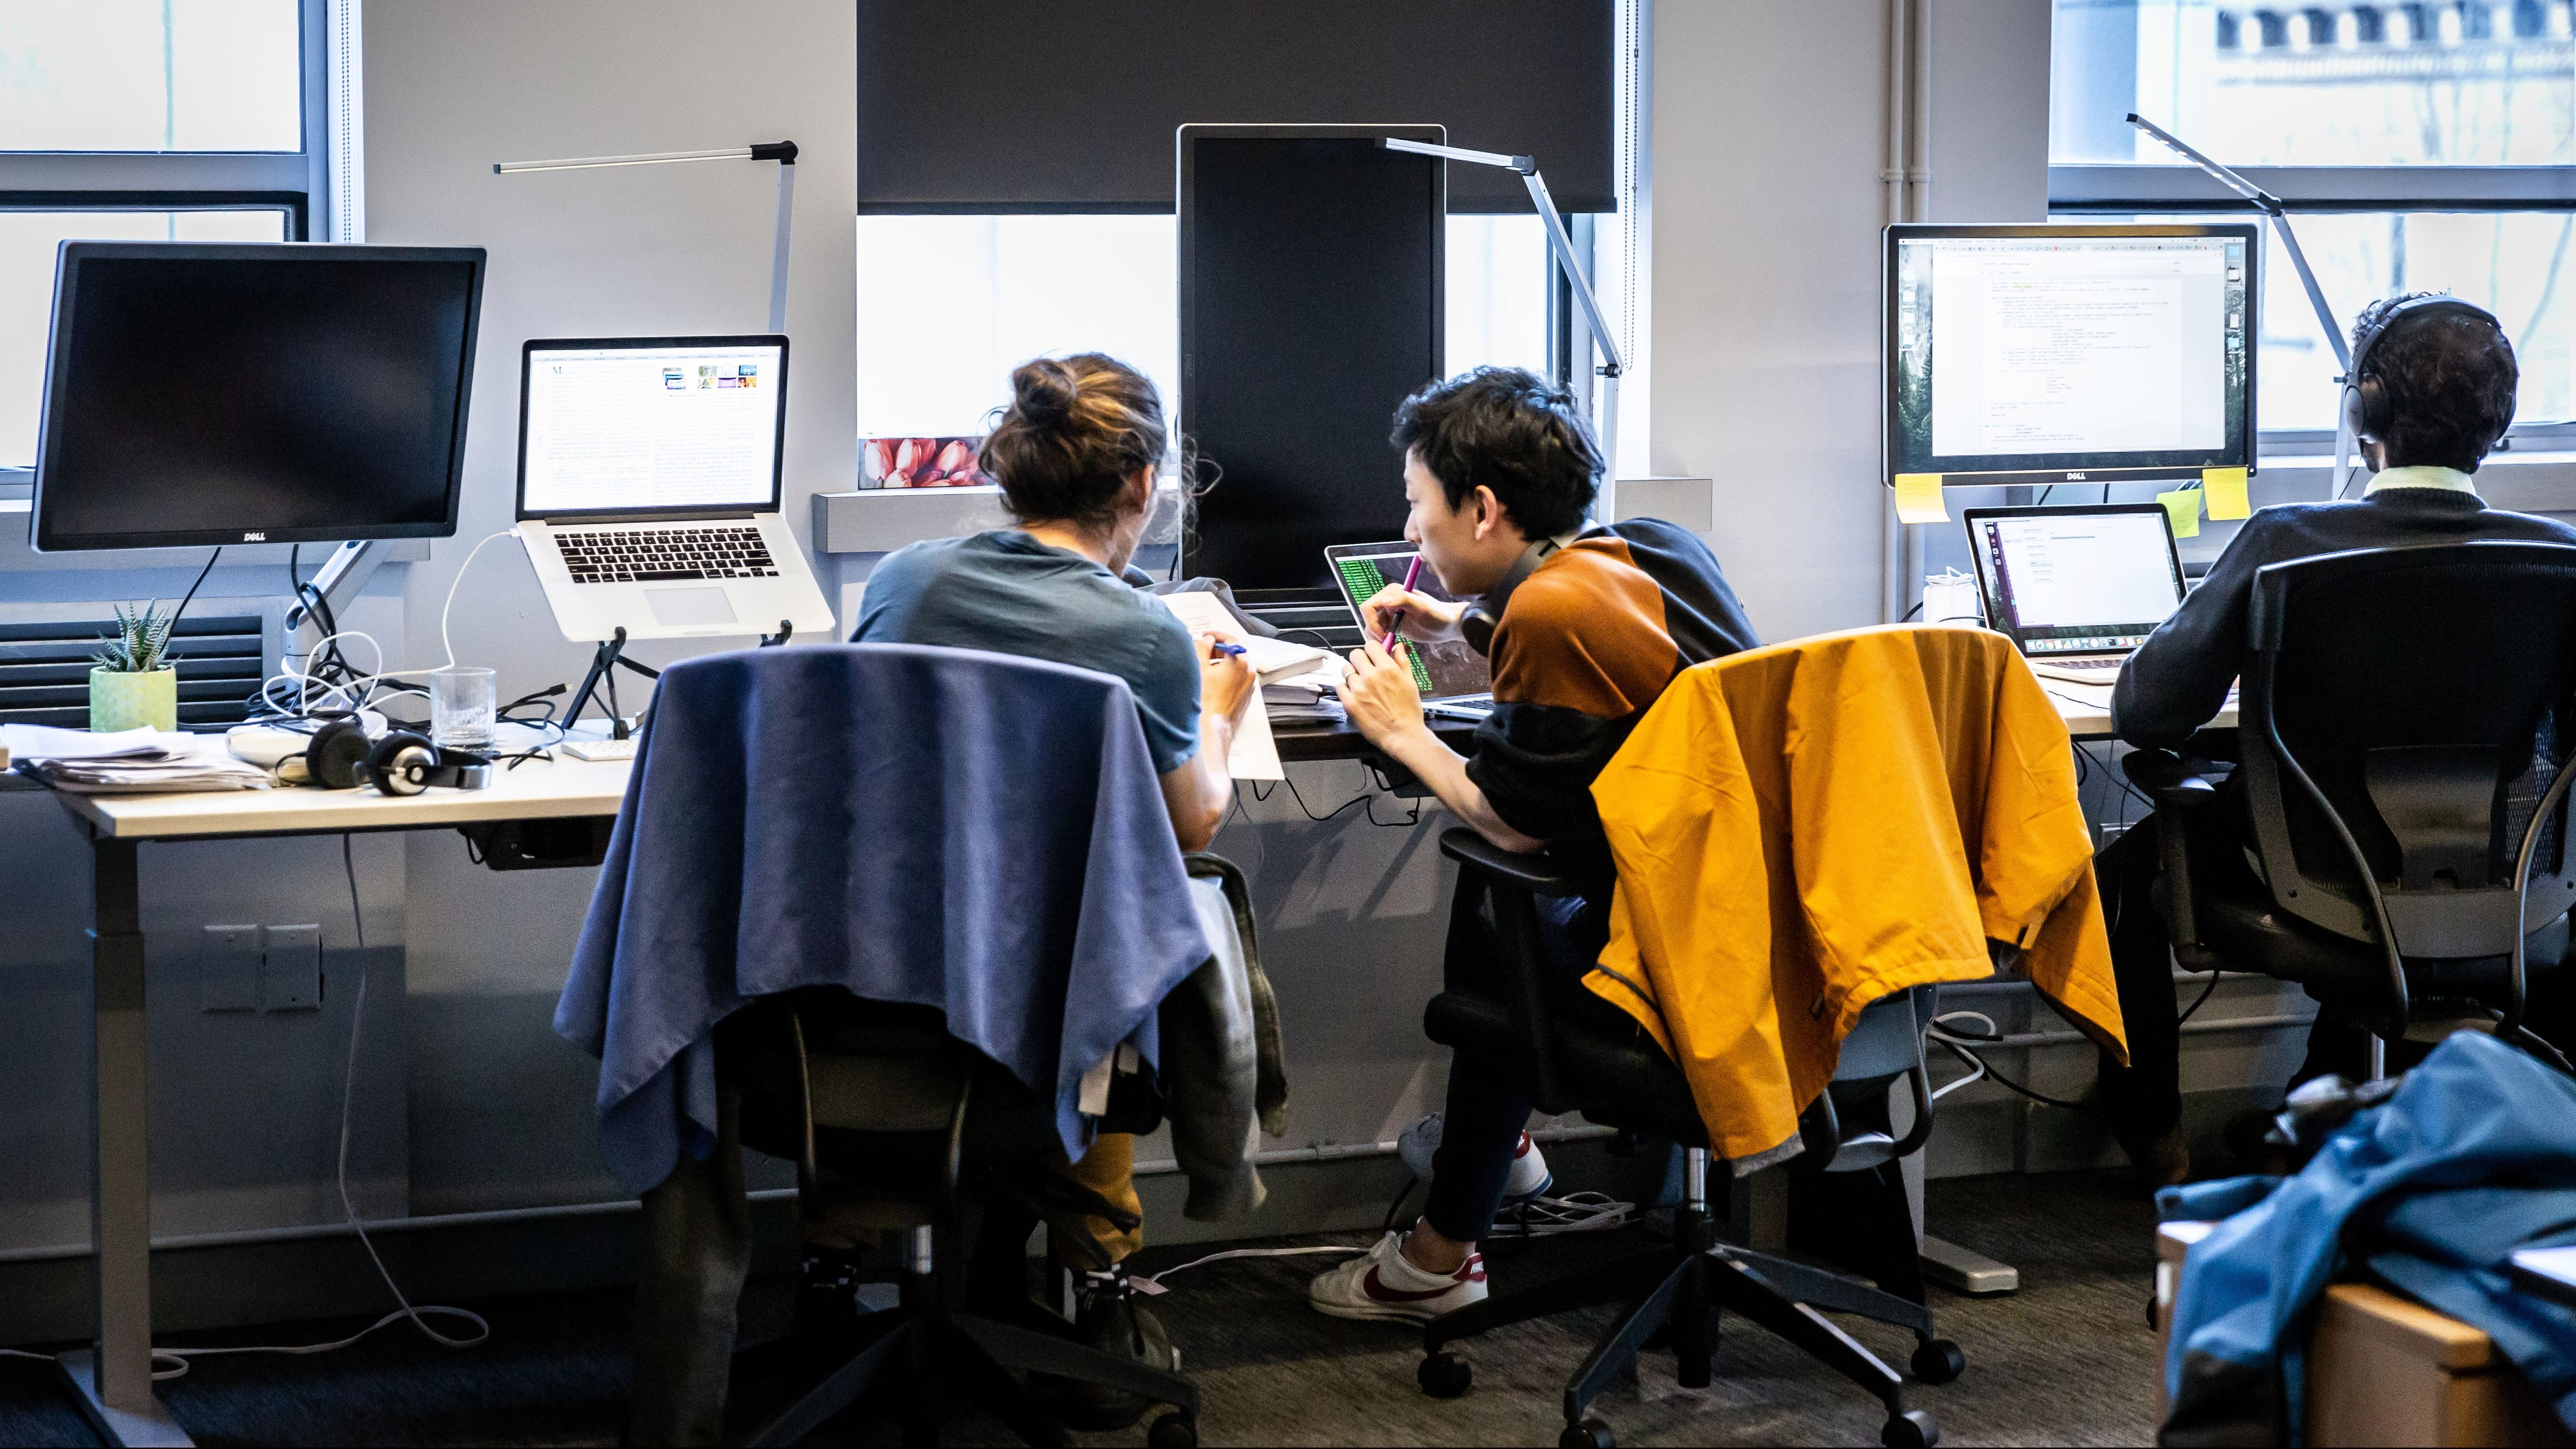 In the future, companies won't hire remote employees. They'll hire remote teams